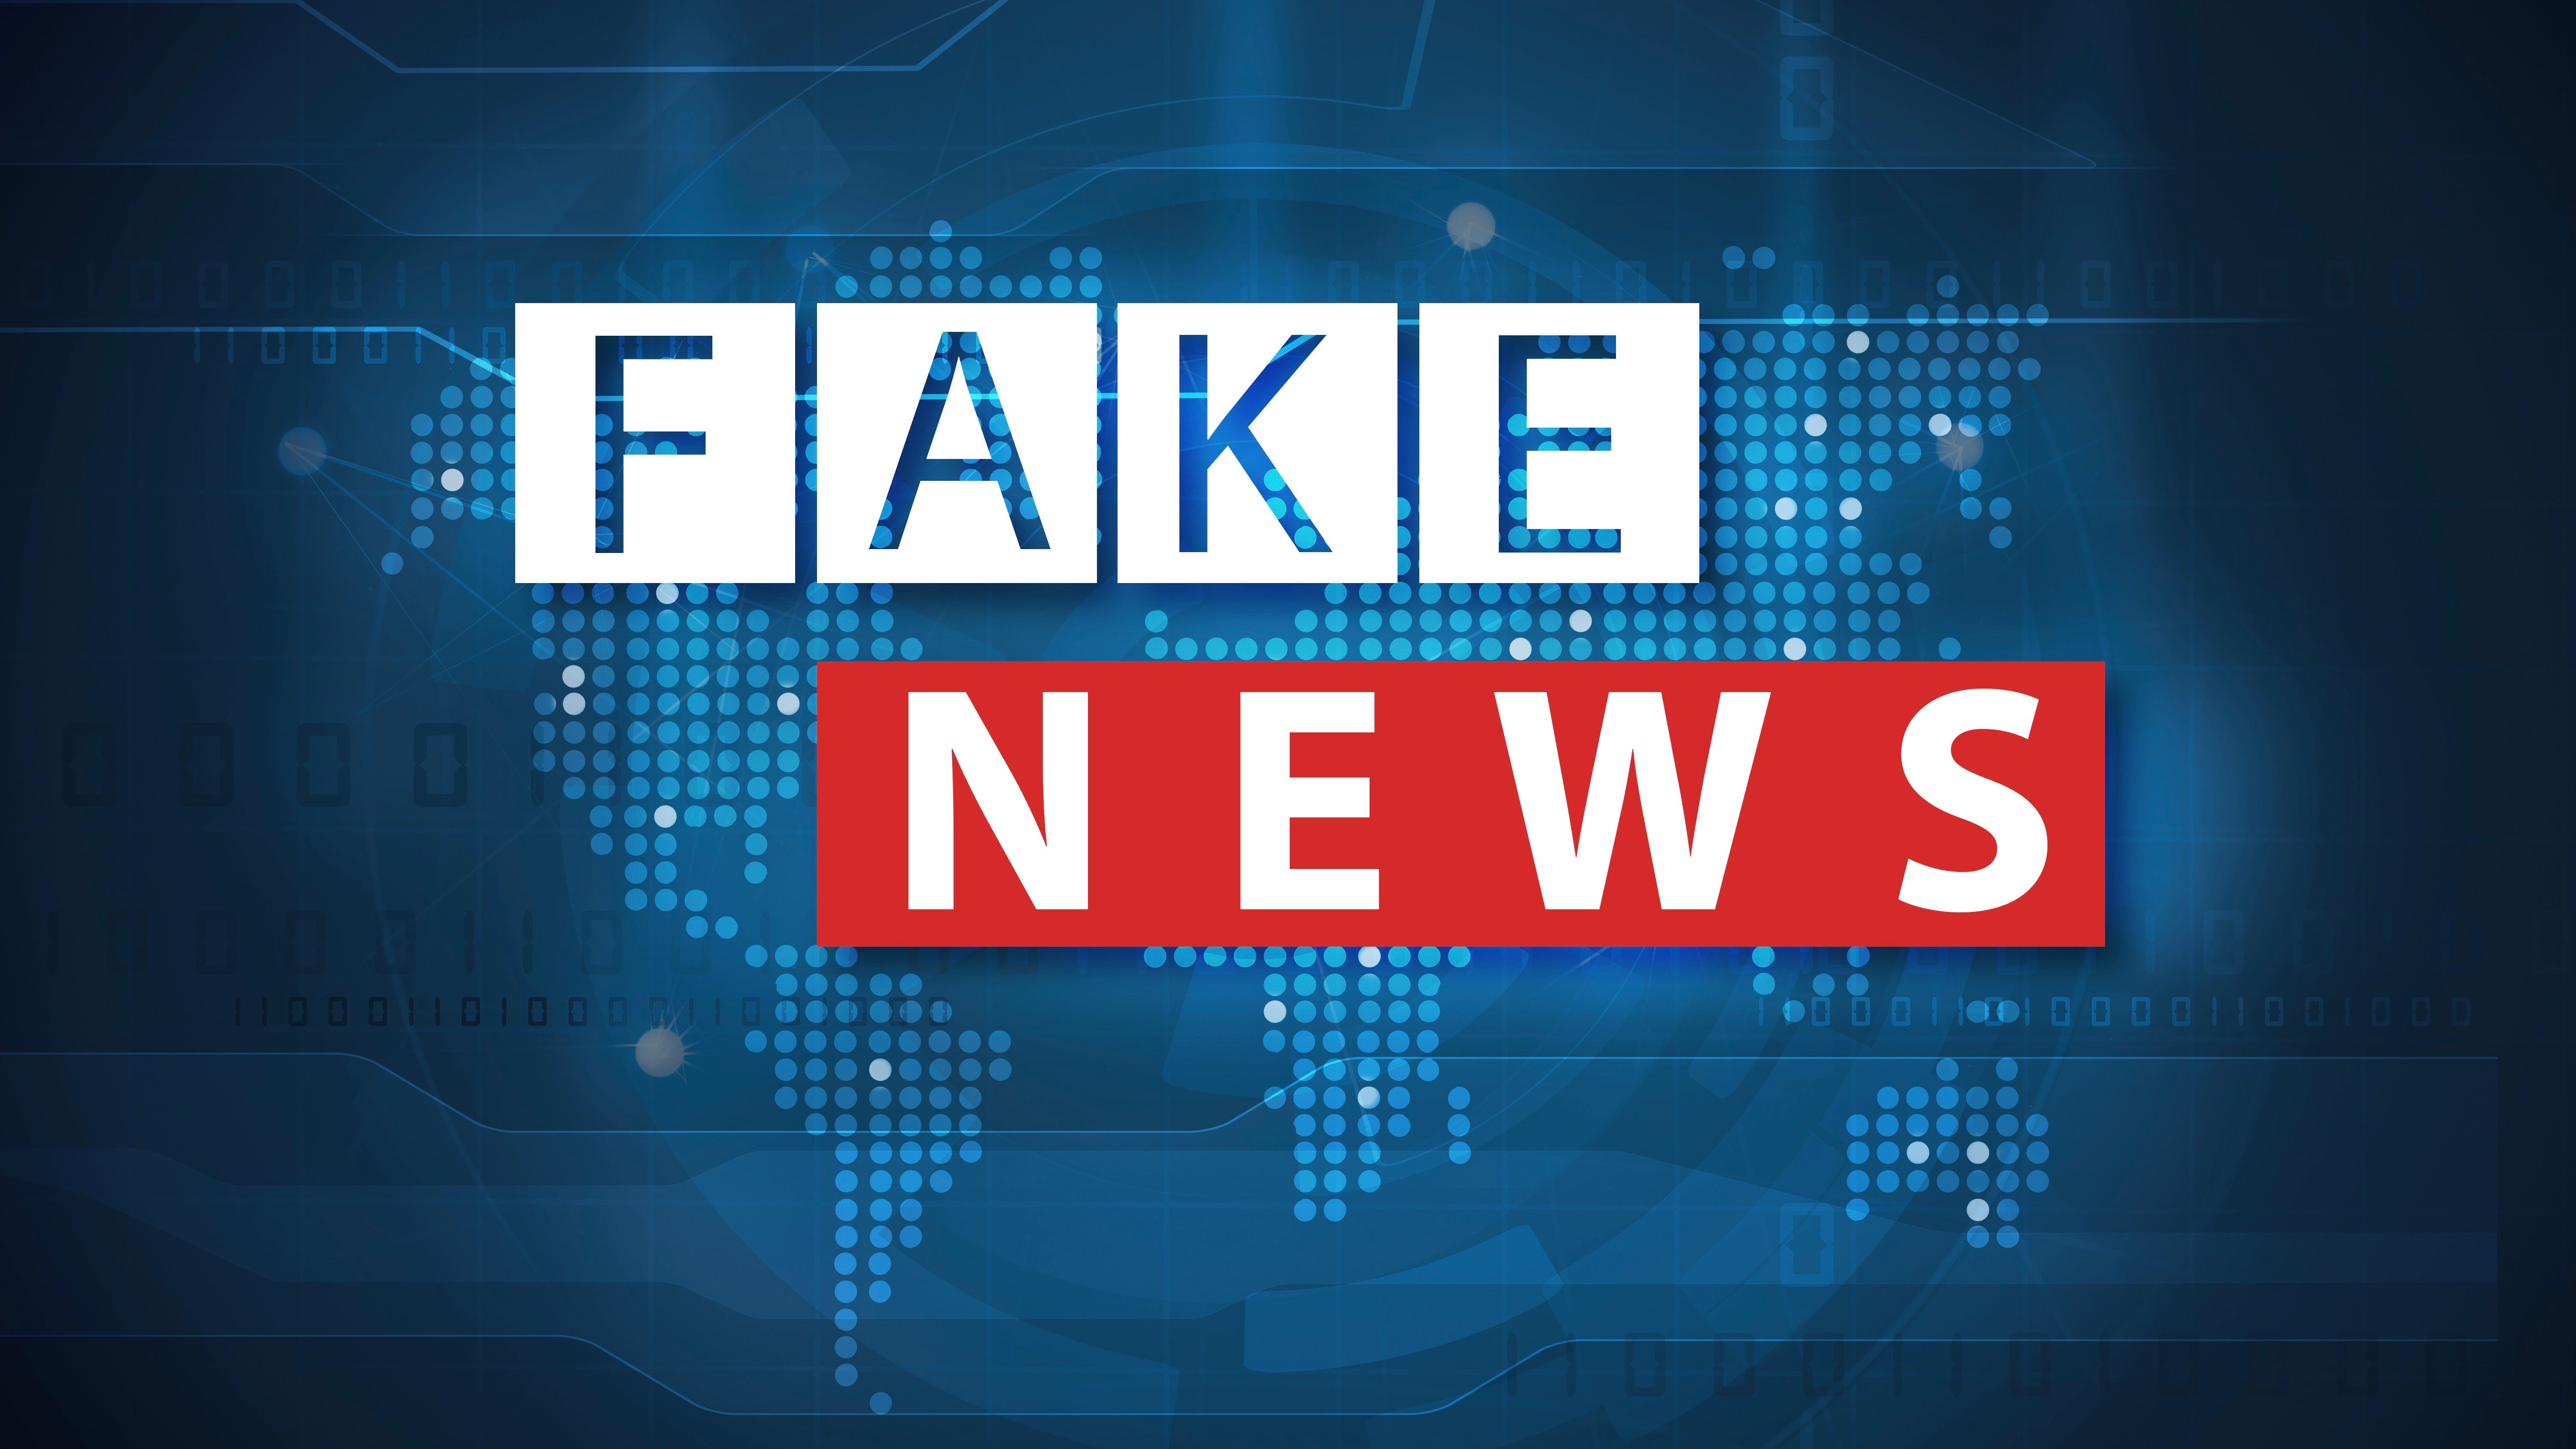 fake news and misinformation concept